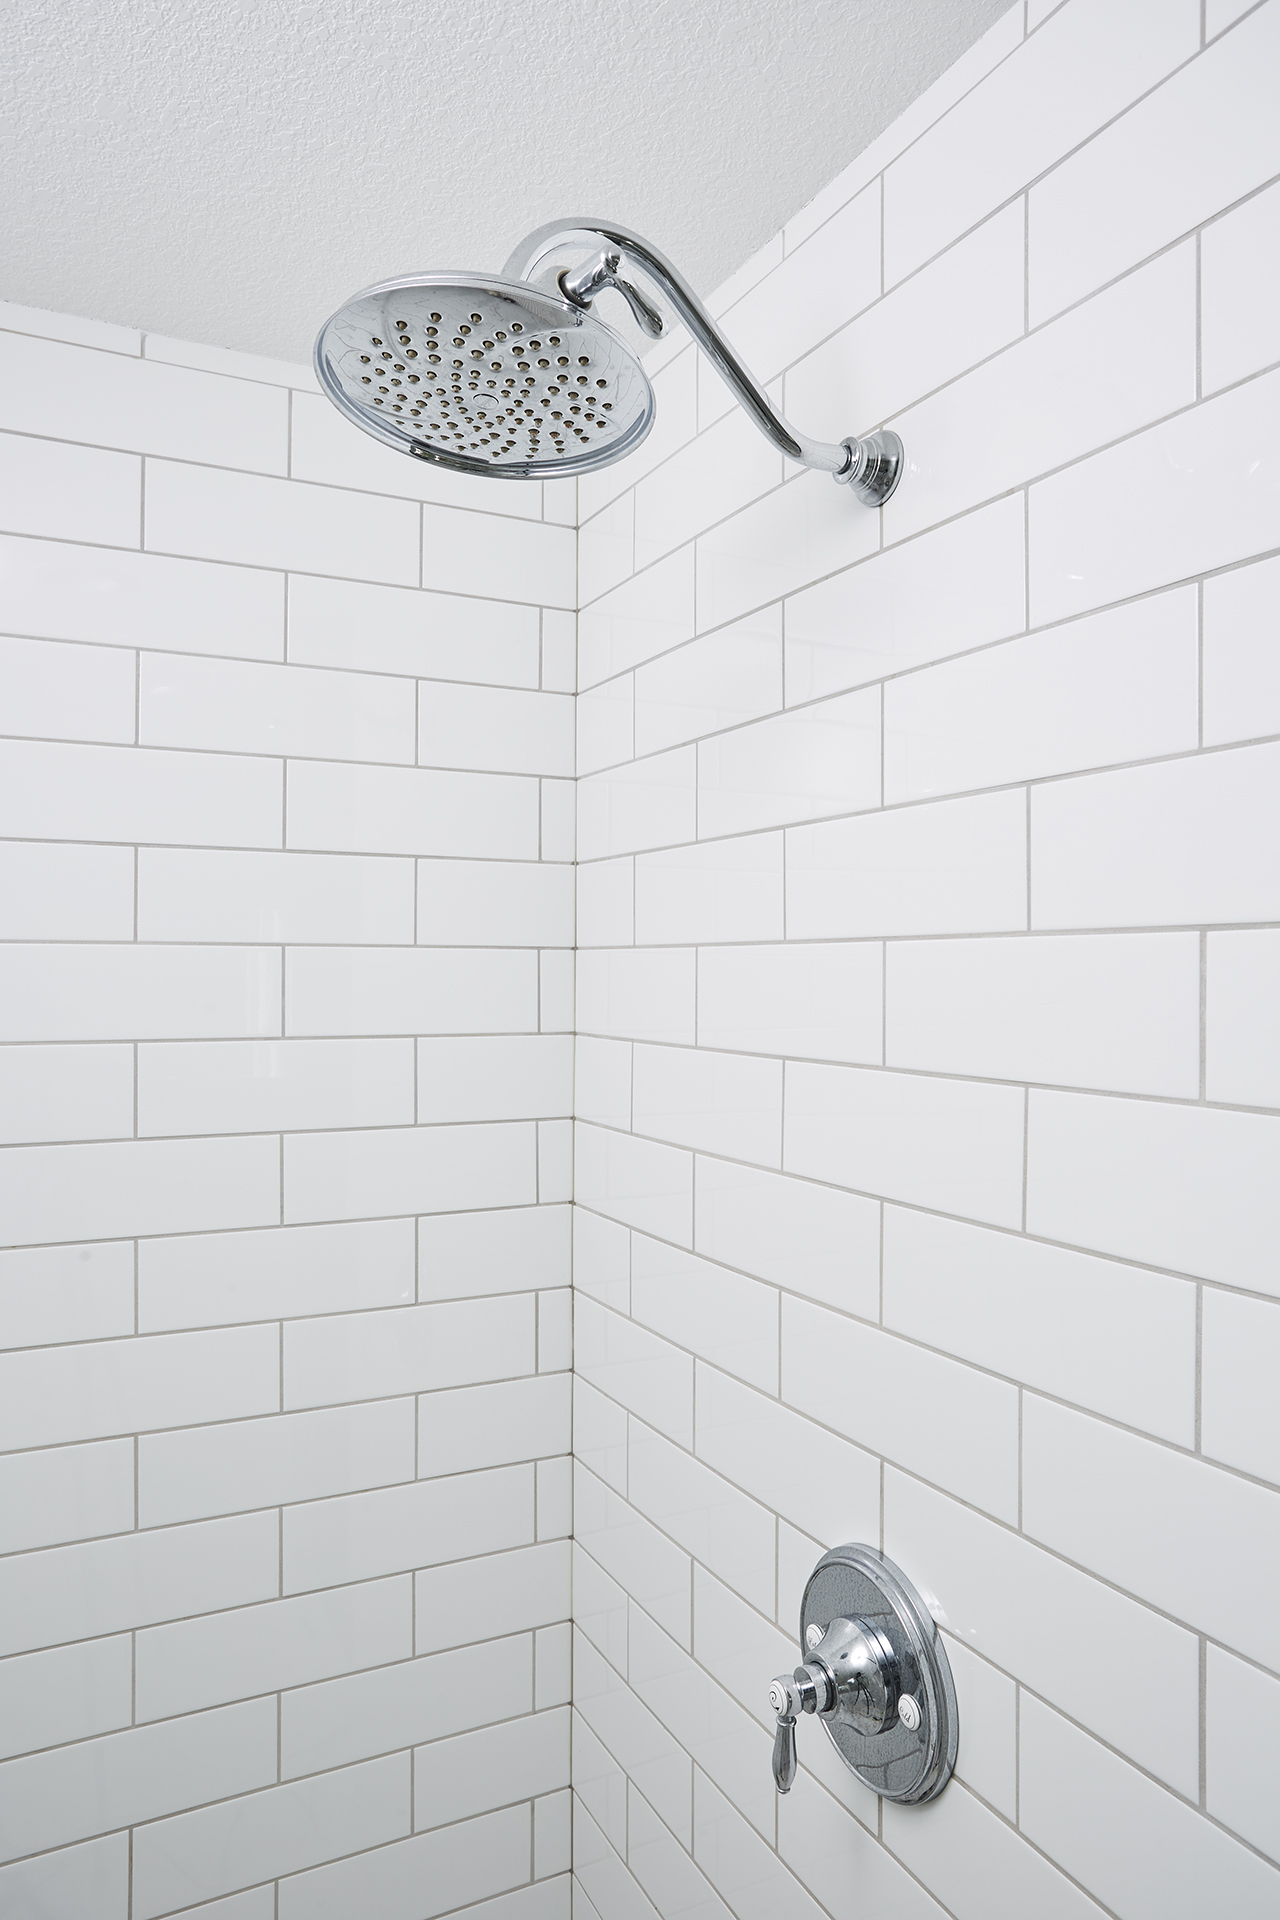 A chrome shower head adds a touch of shine and glamour to this bathroom, giving the space a feeling of luxury.